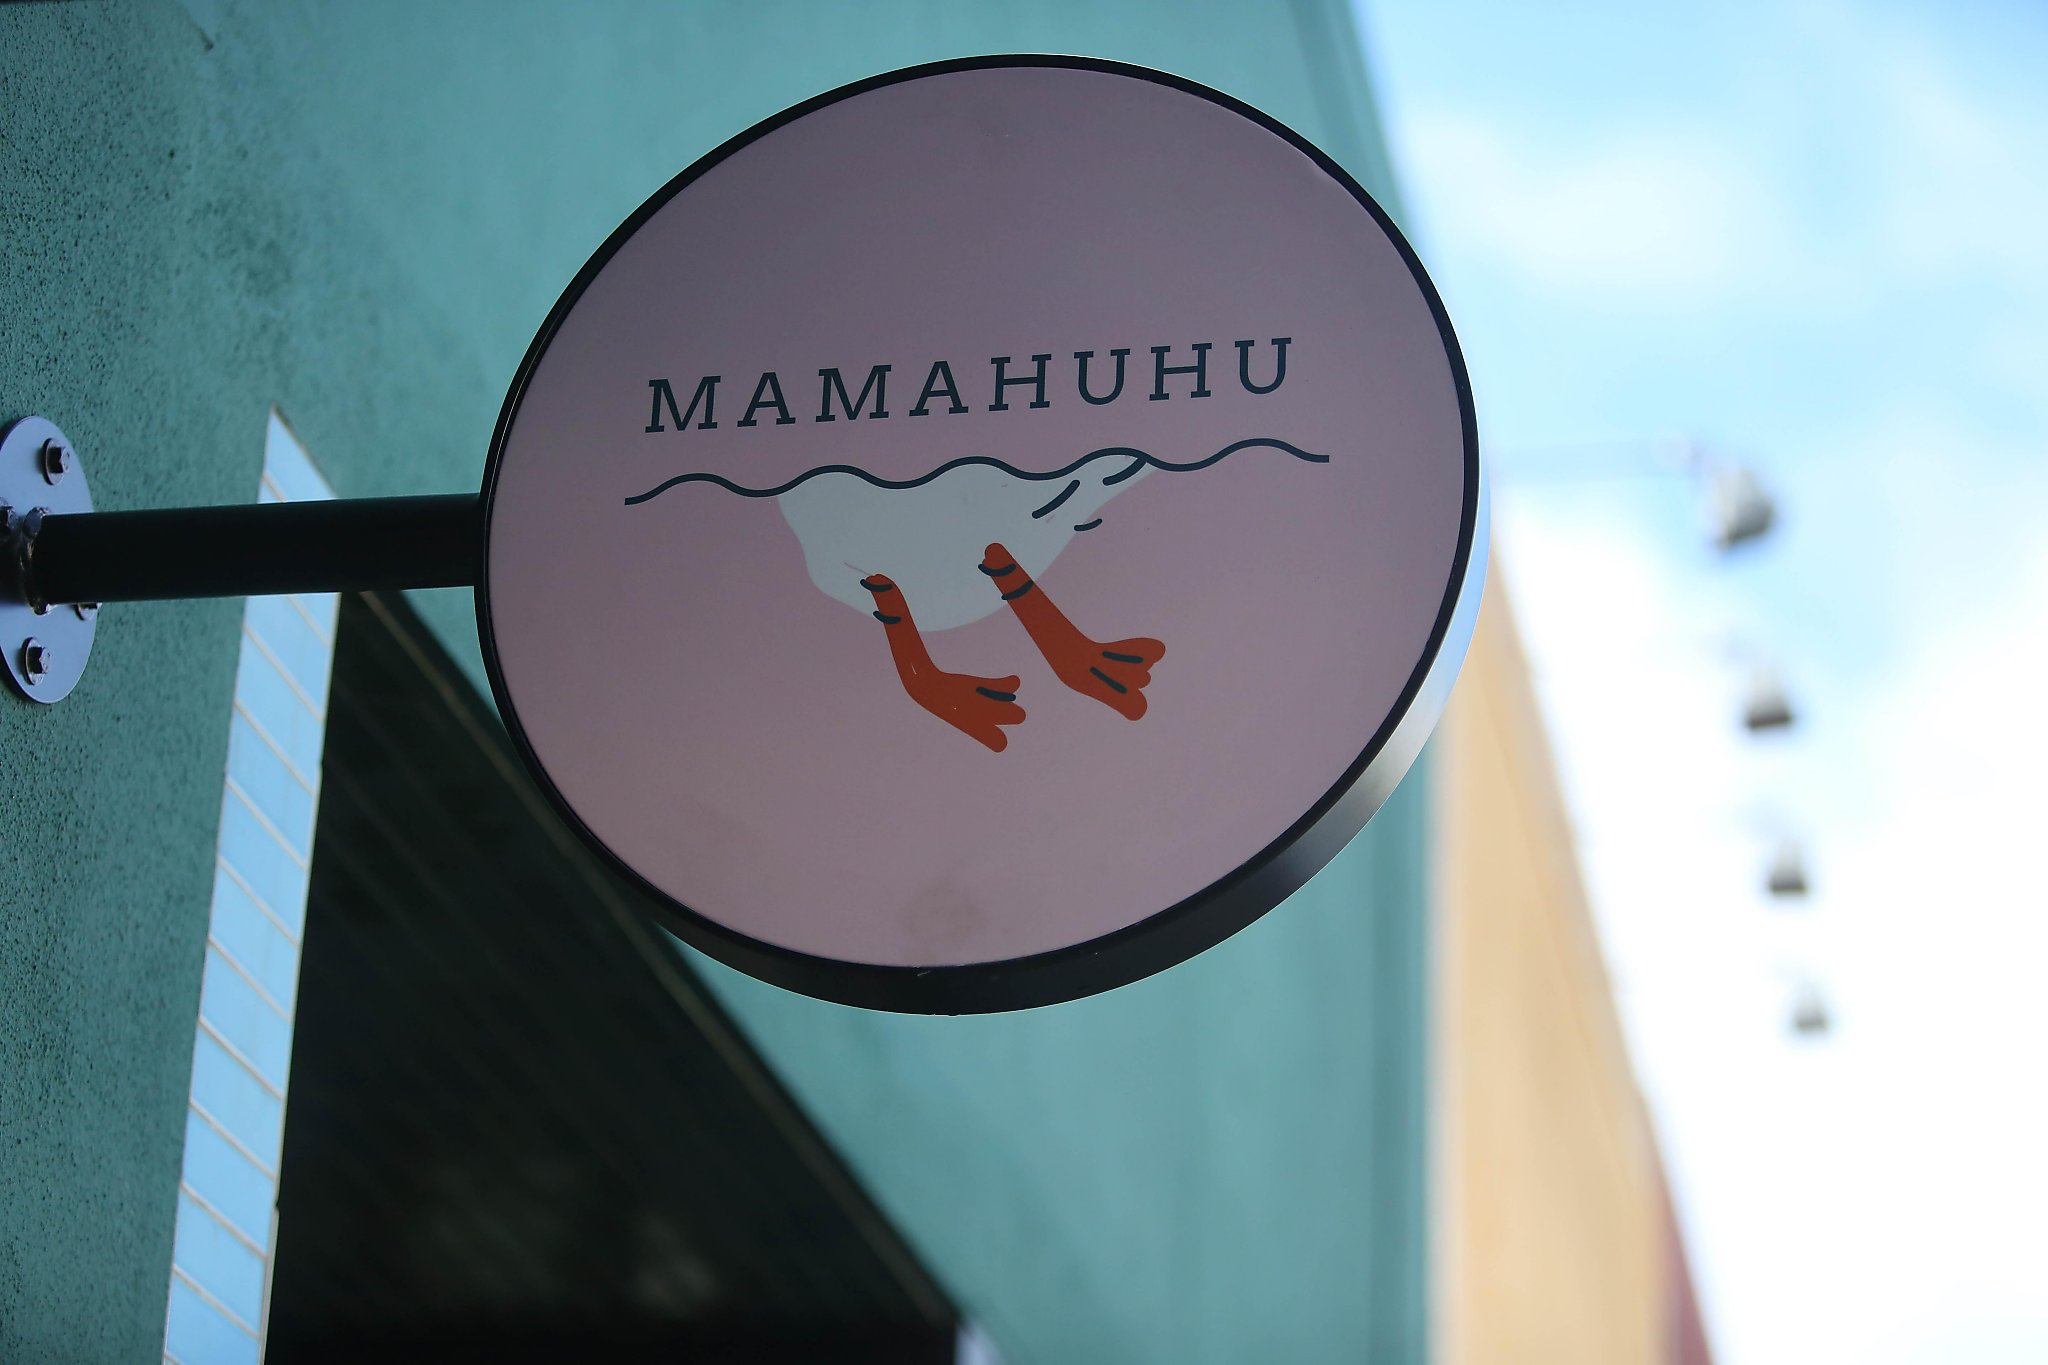 6 things to know about Mamahuhu, Brandon Jew's ode to Chinese-American classics